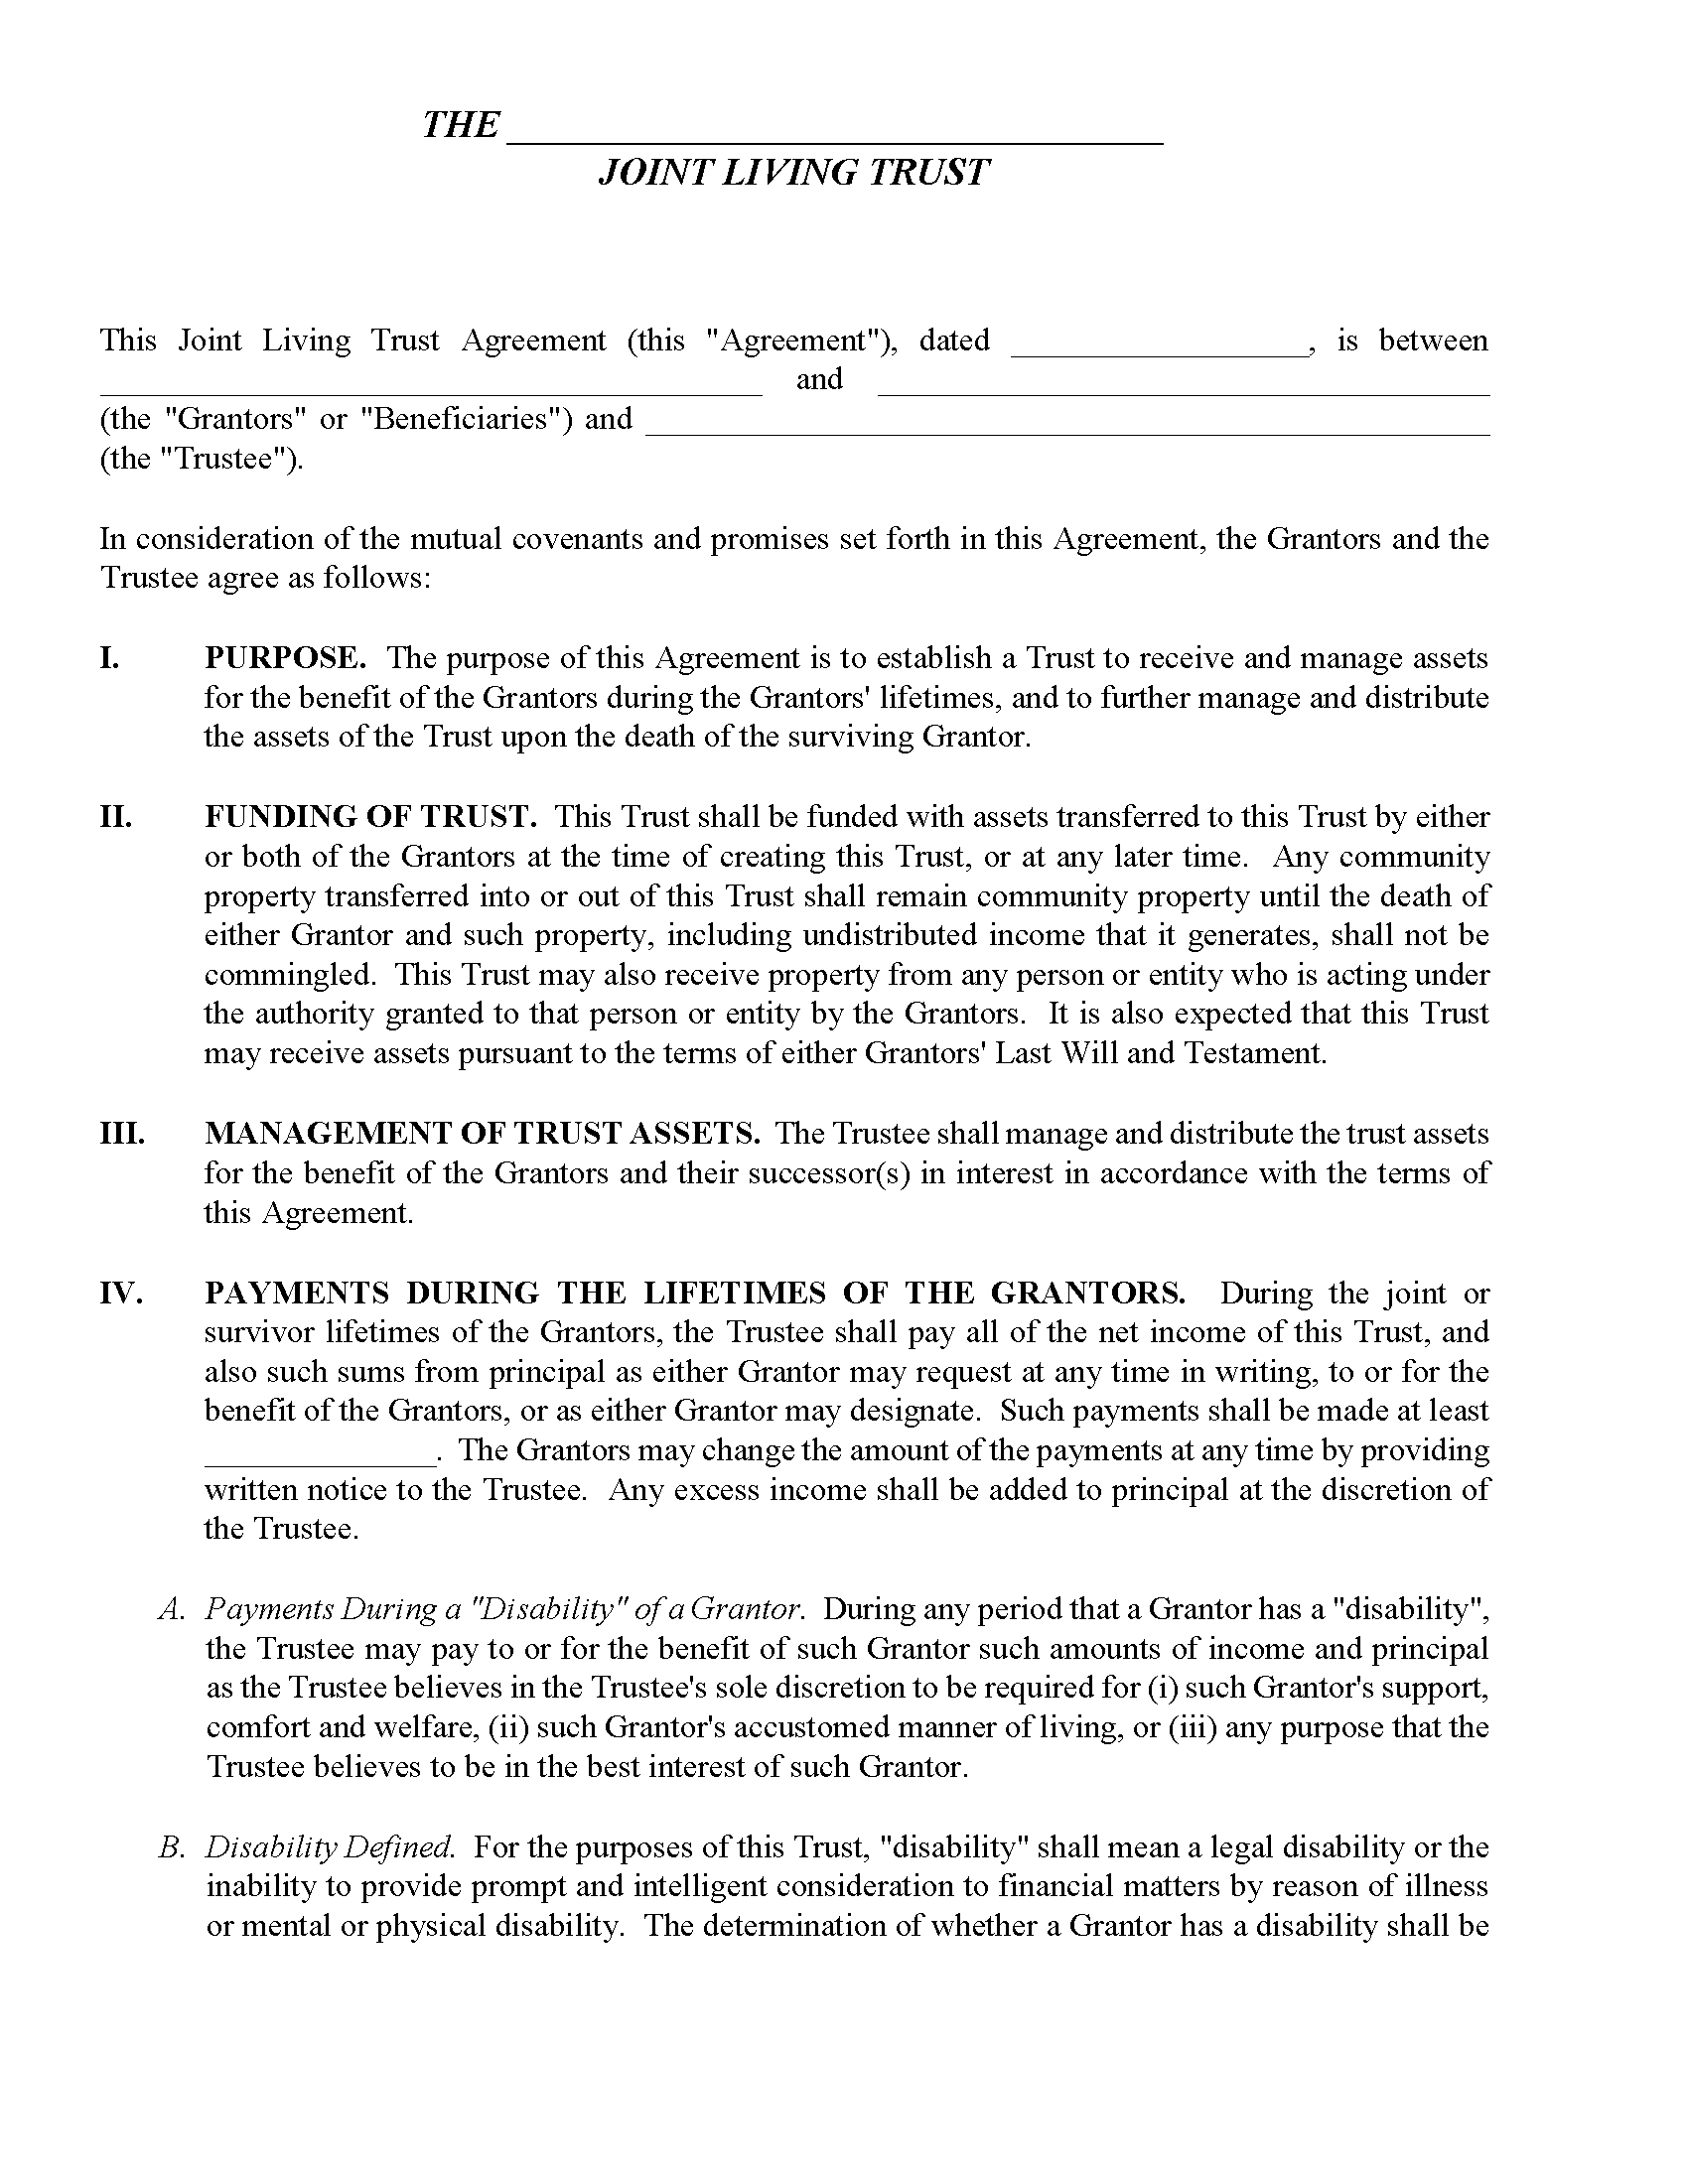 Vermont Joint Living Trust Form